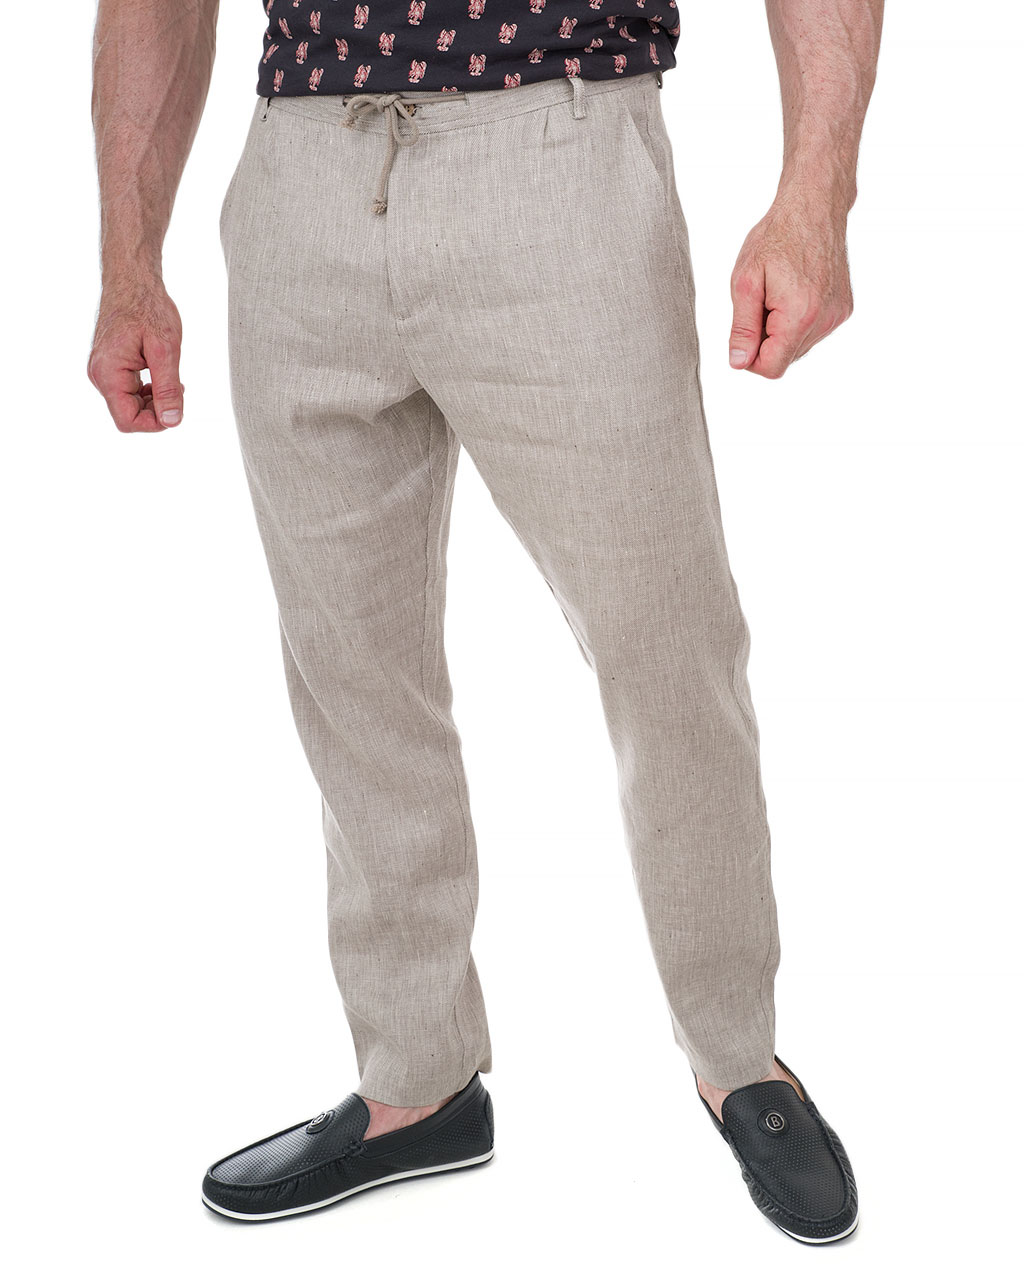 Men's trousers 2BPA113-SND/91 (1)